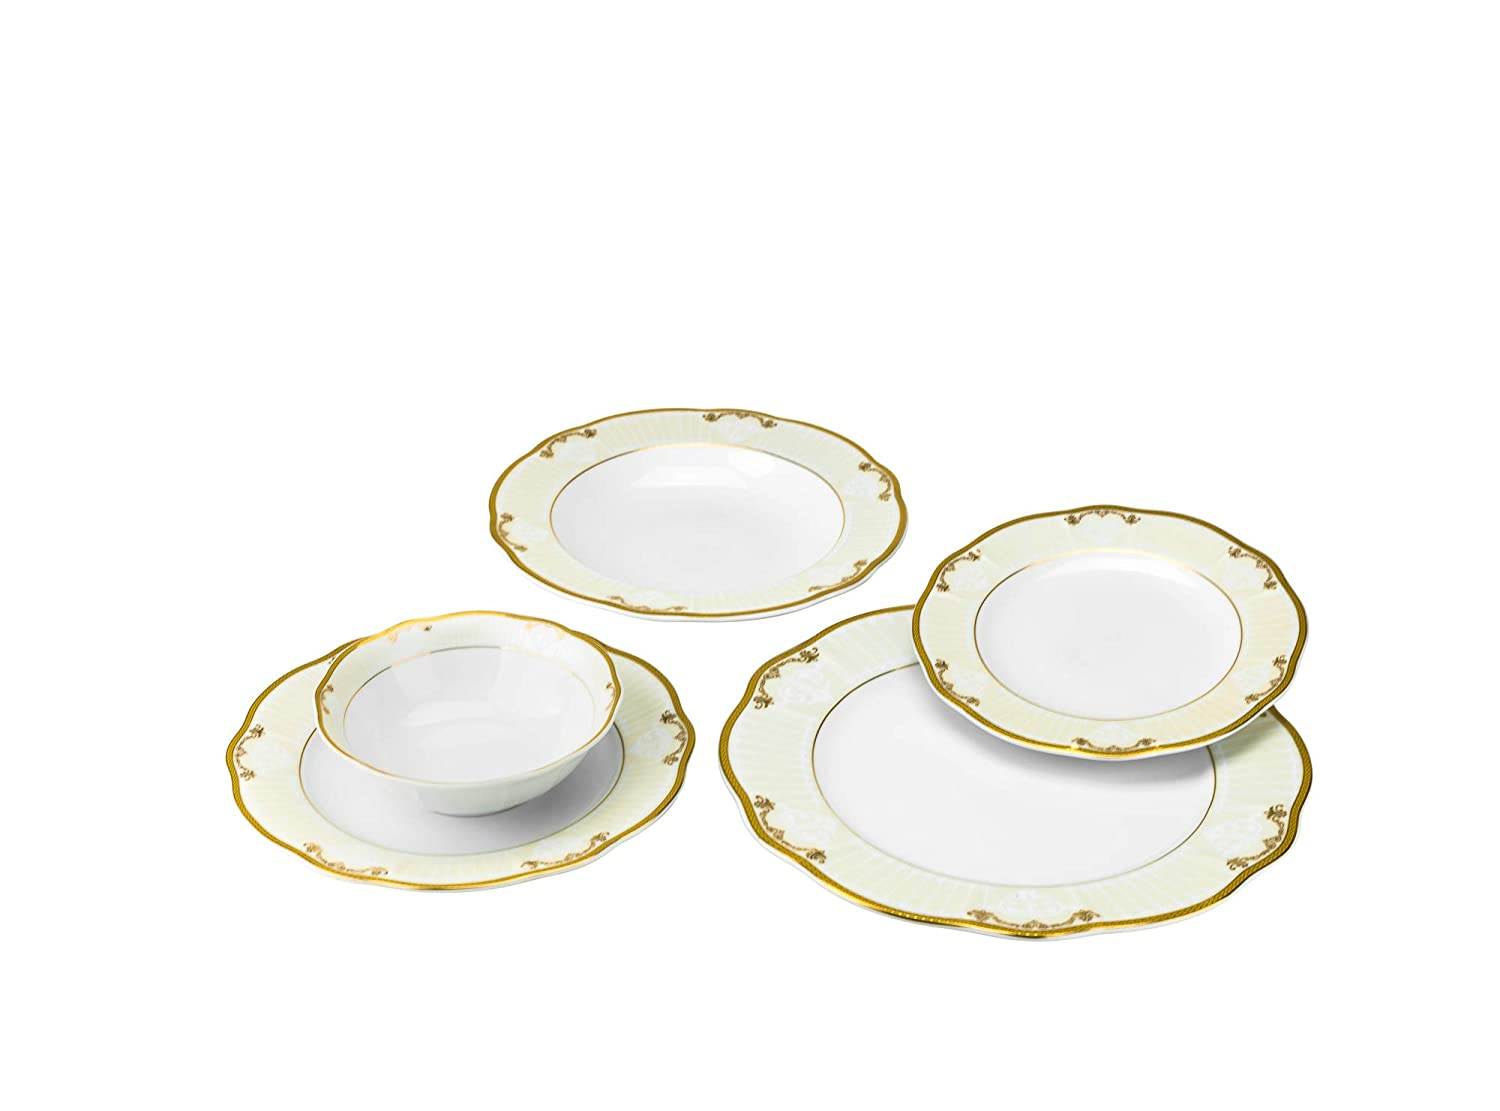 Joseph Seigh GPDIAMOND-20, 20 Pcs Fine Porcelain Dinnerware Set, Ceramic Dining Table Setting, Bone China Tableware for 4, Set of 20